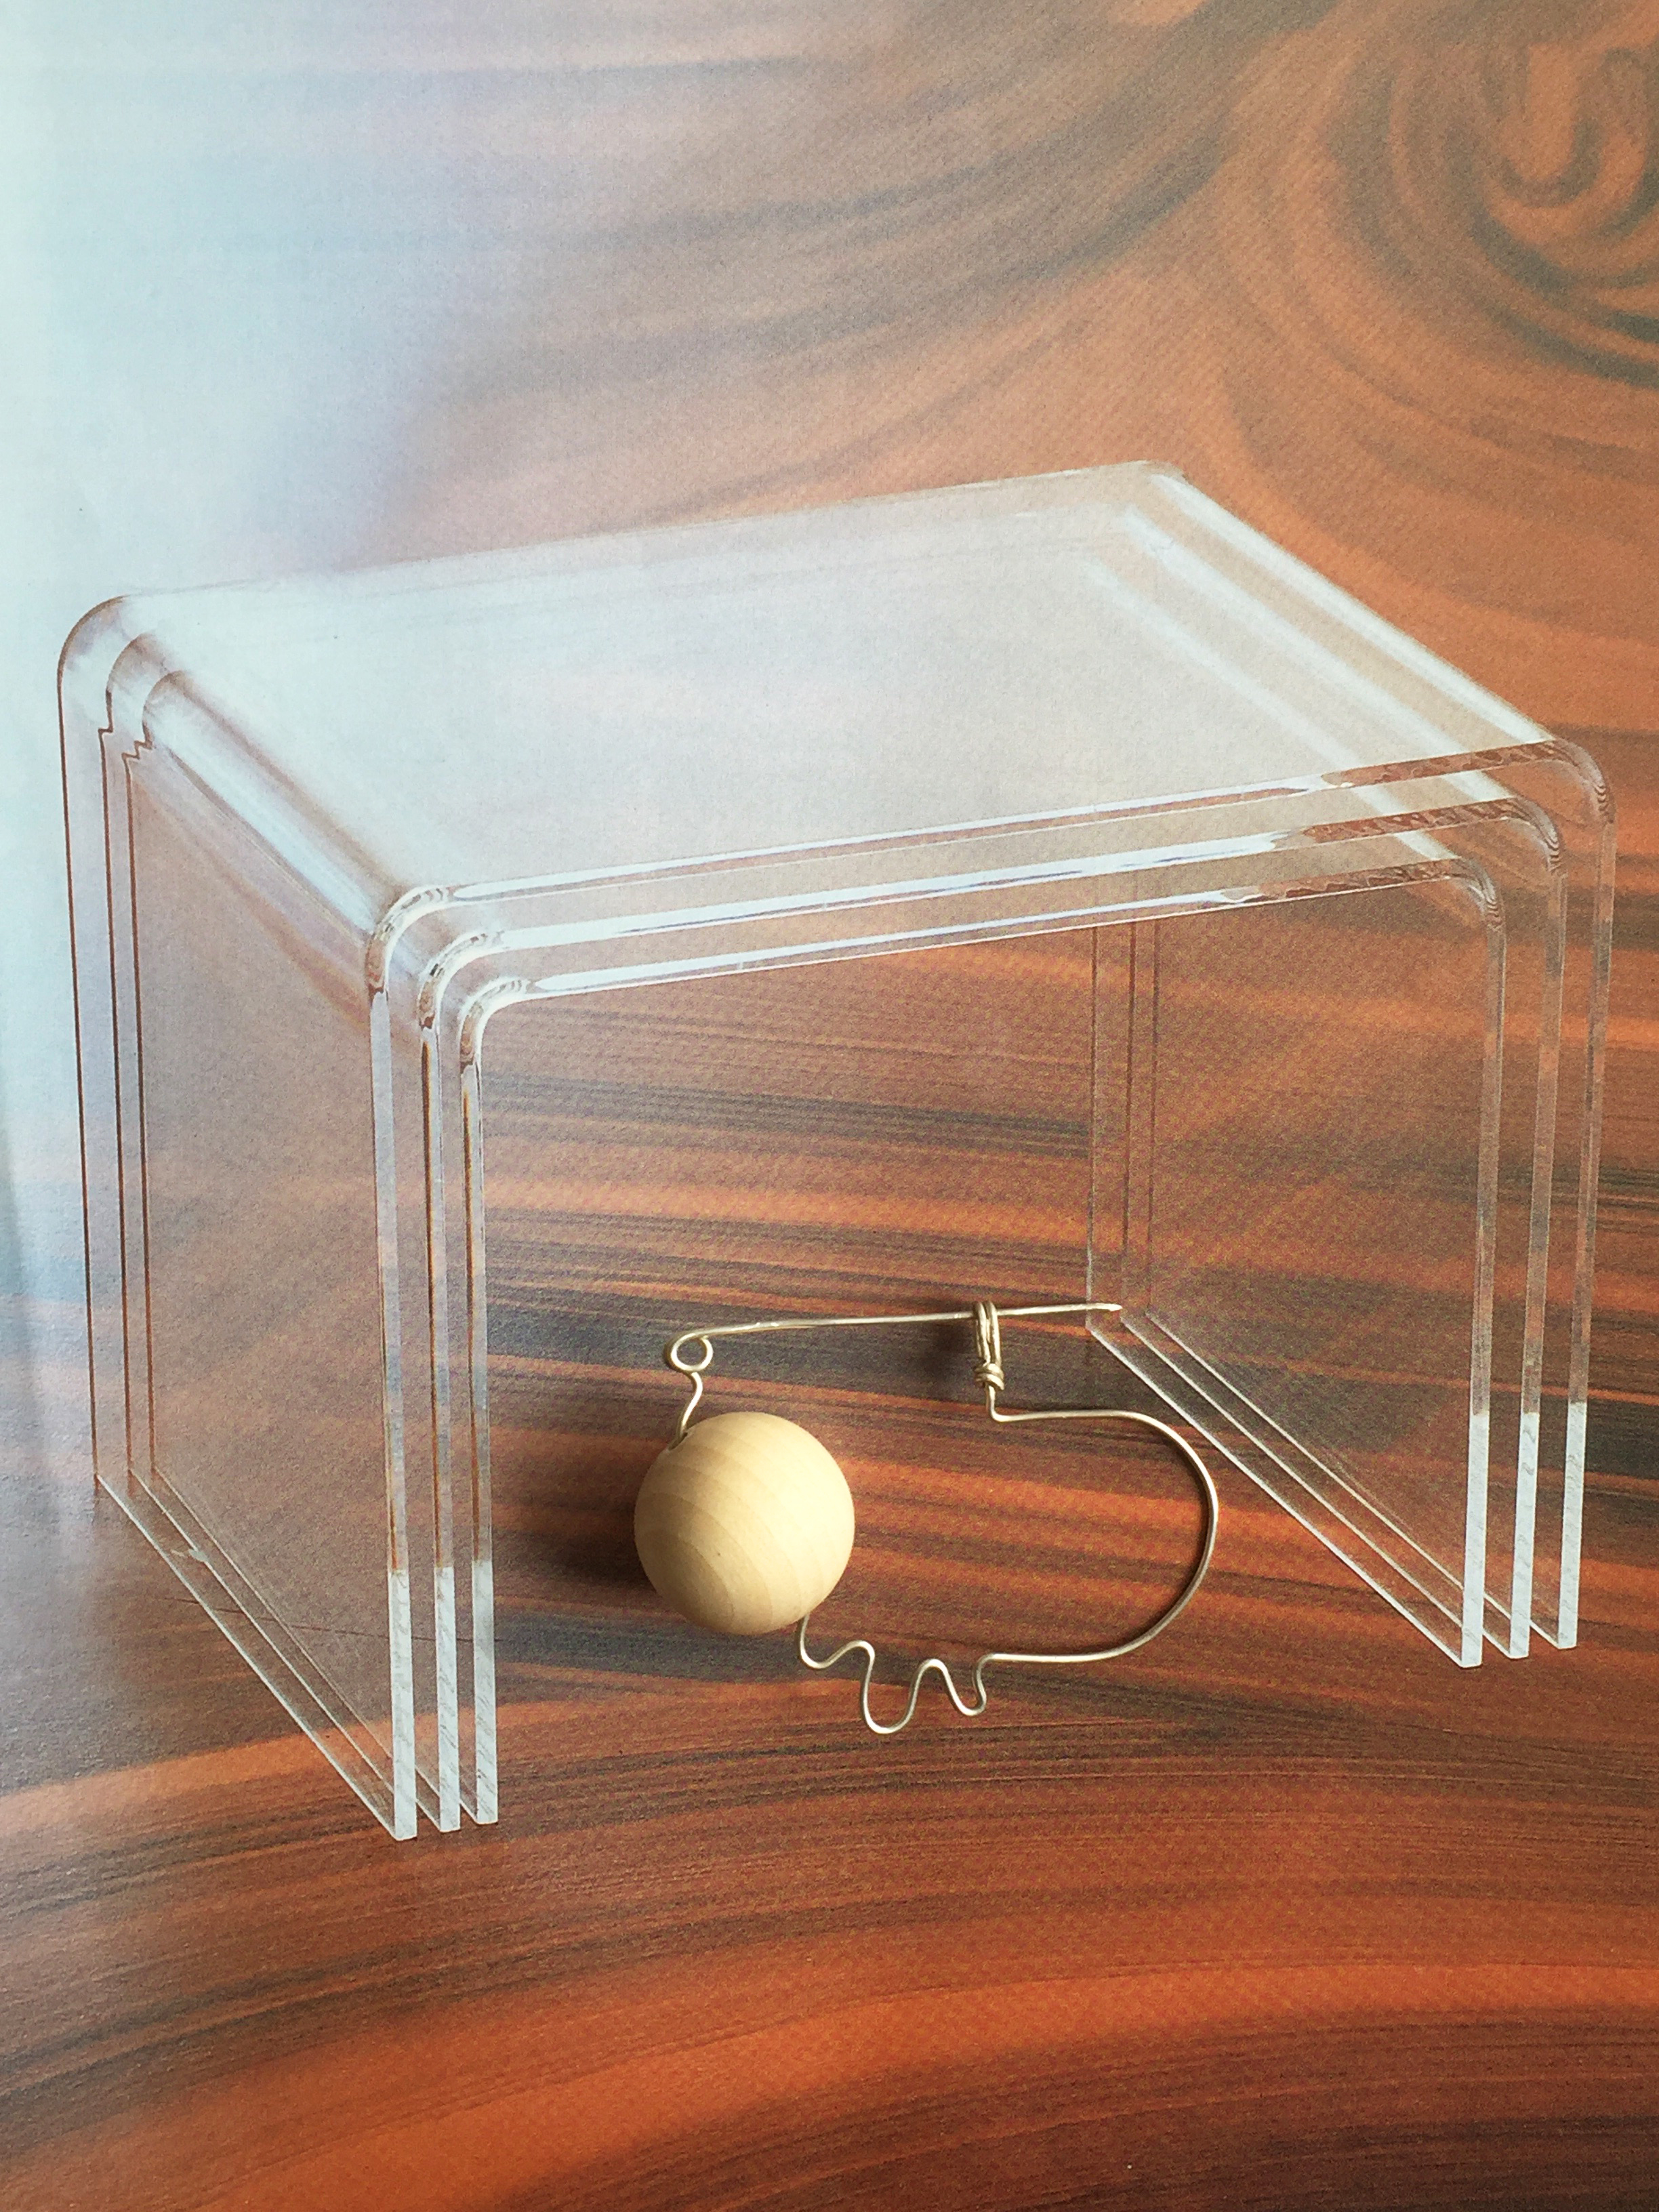 6. Wooden ball & silver pin